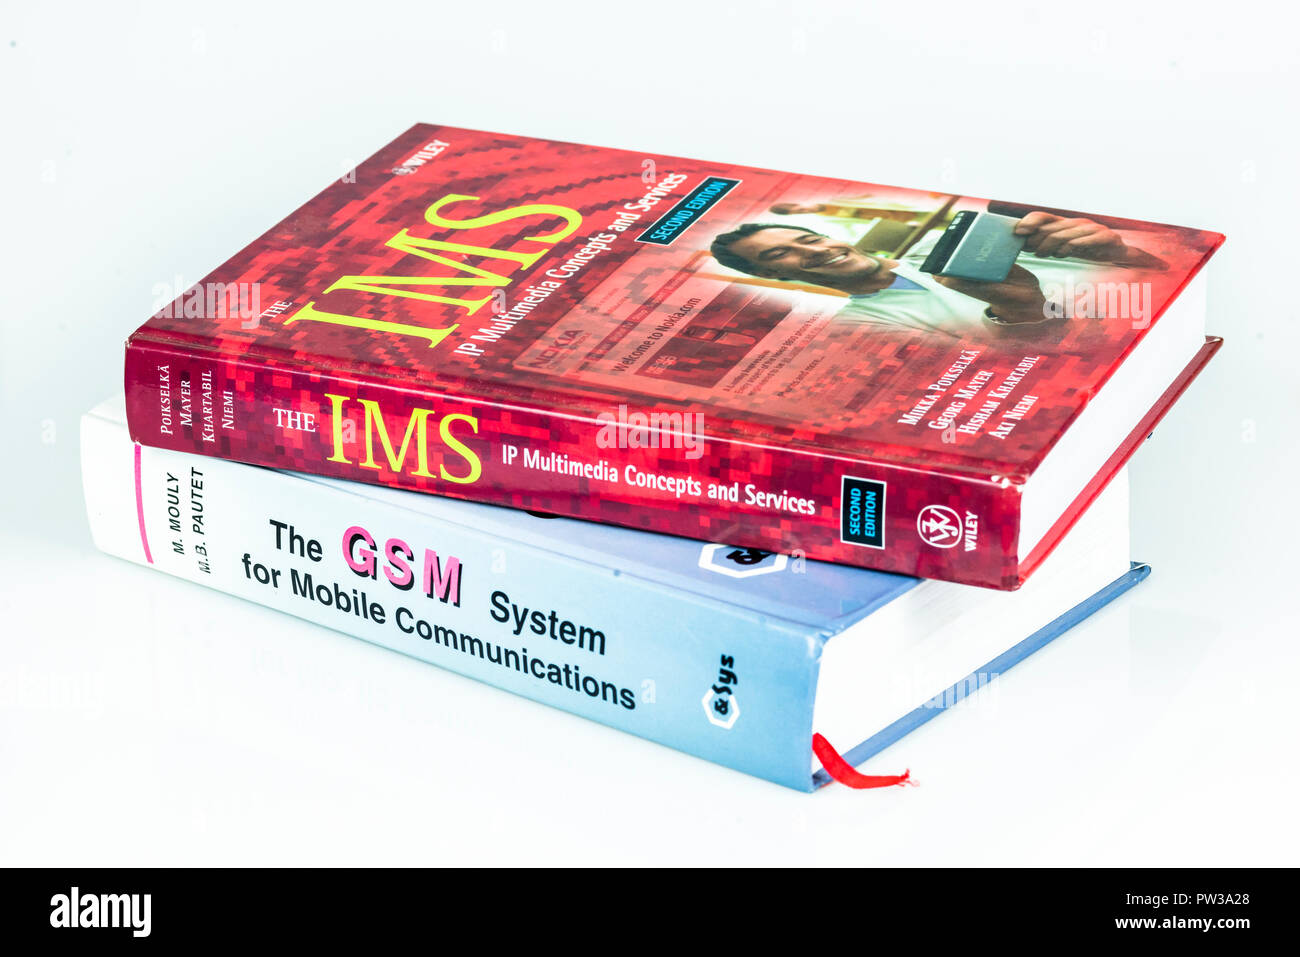 Technical reference books on Mobile technologies covering GSM and IMS - Stock Image